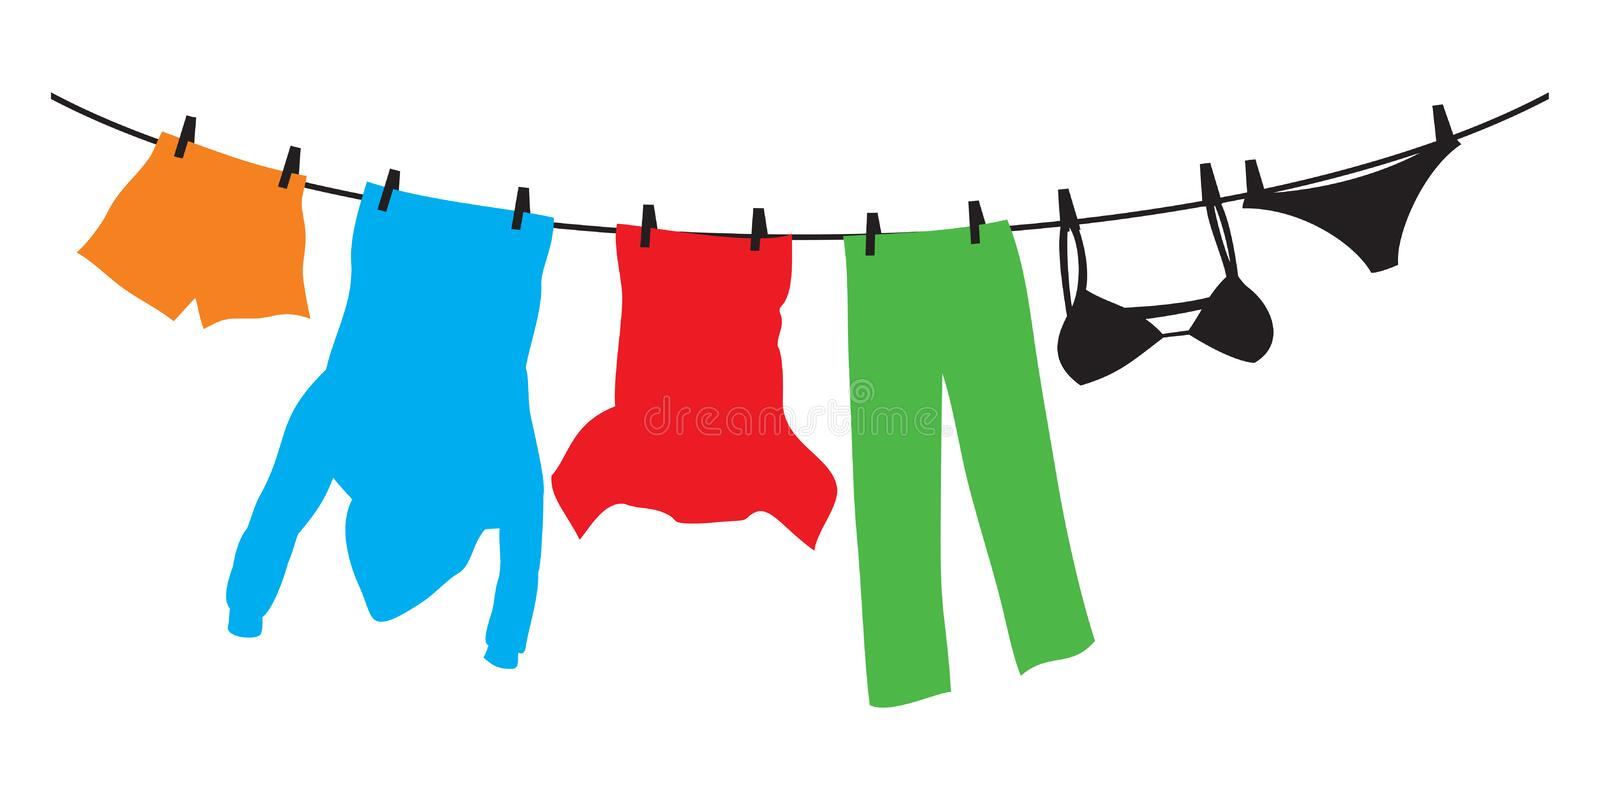 Clothes hanging on a clothesline vector illustration